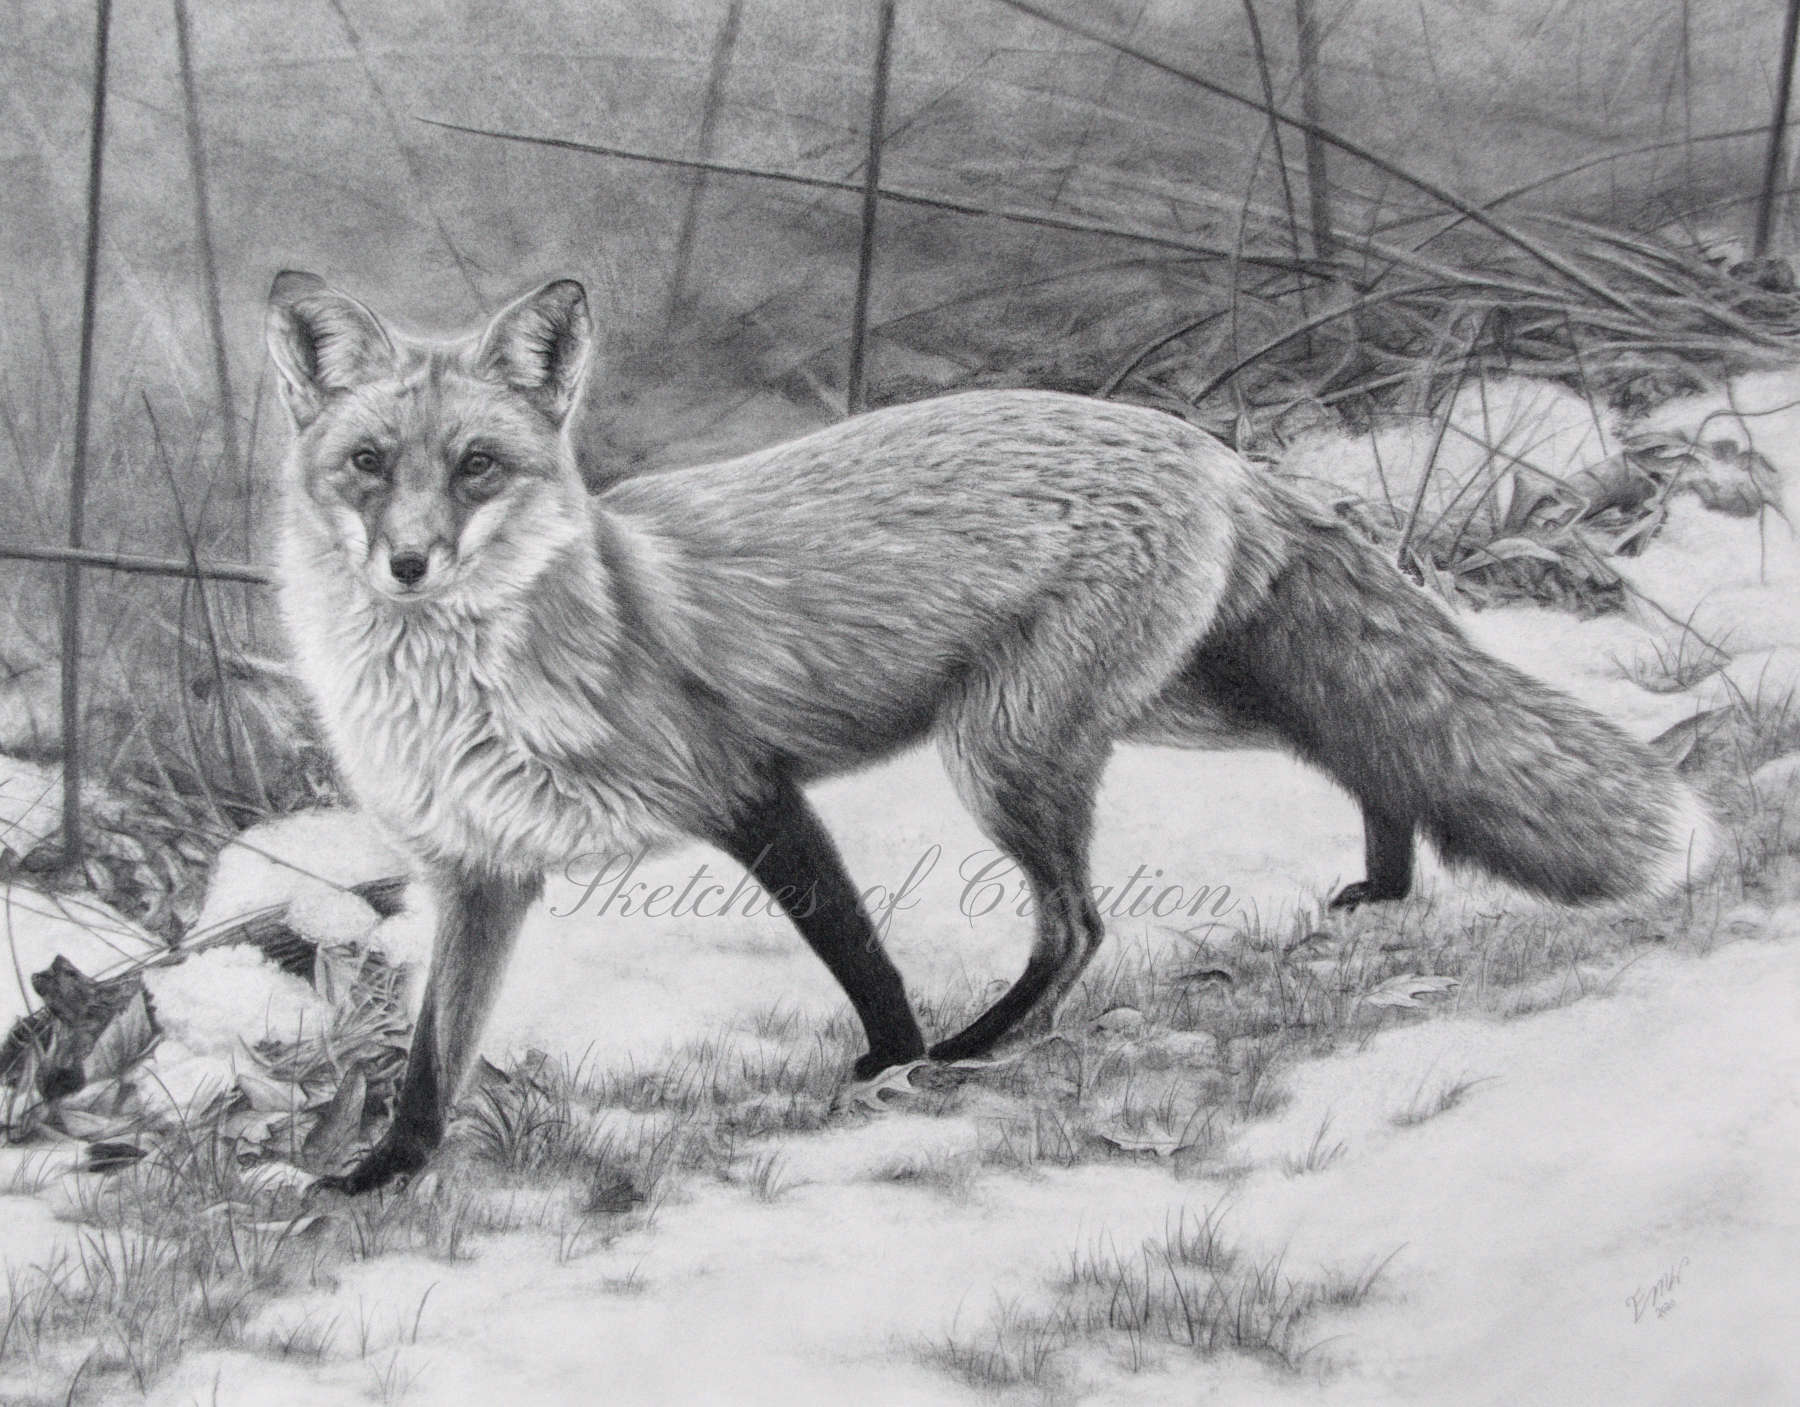 'Roam' a drawing of a fox in the snow. 11x14 inches. Completed November 2020